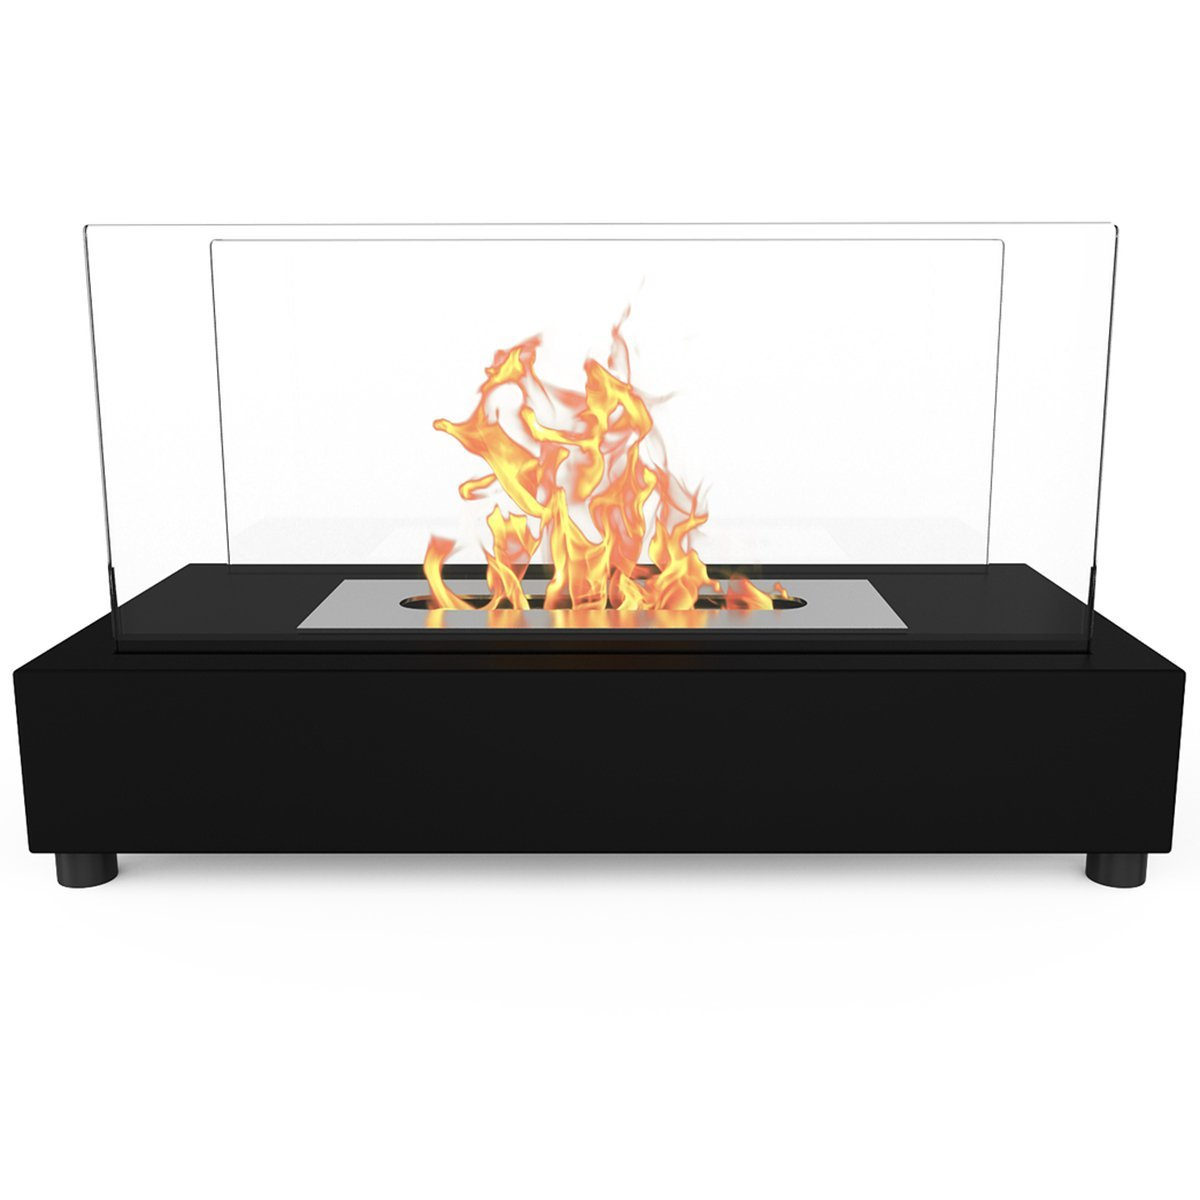 table fireplace,